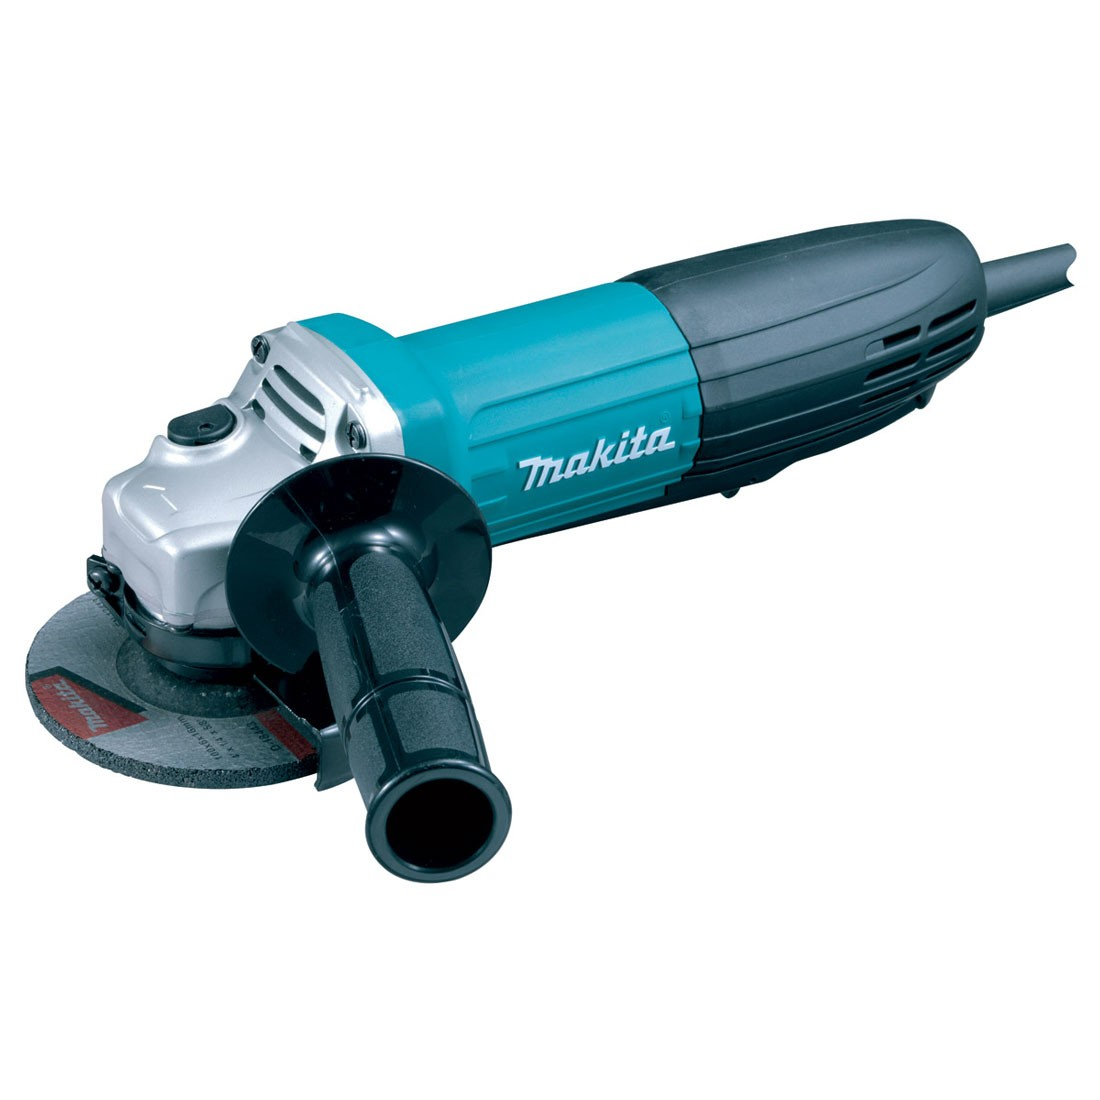 Makita GA4534 Slim Angle Grinder 115mm with Paddle Switch